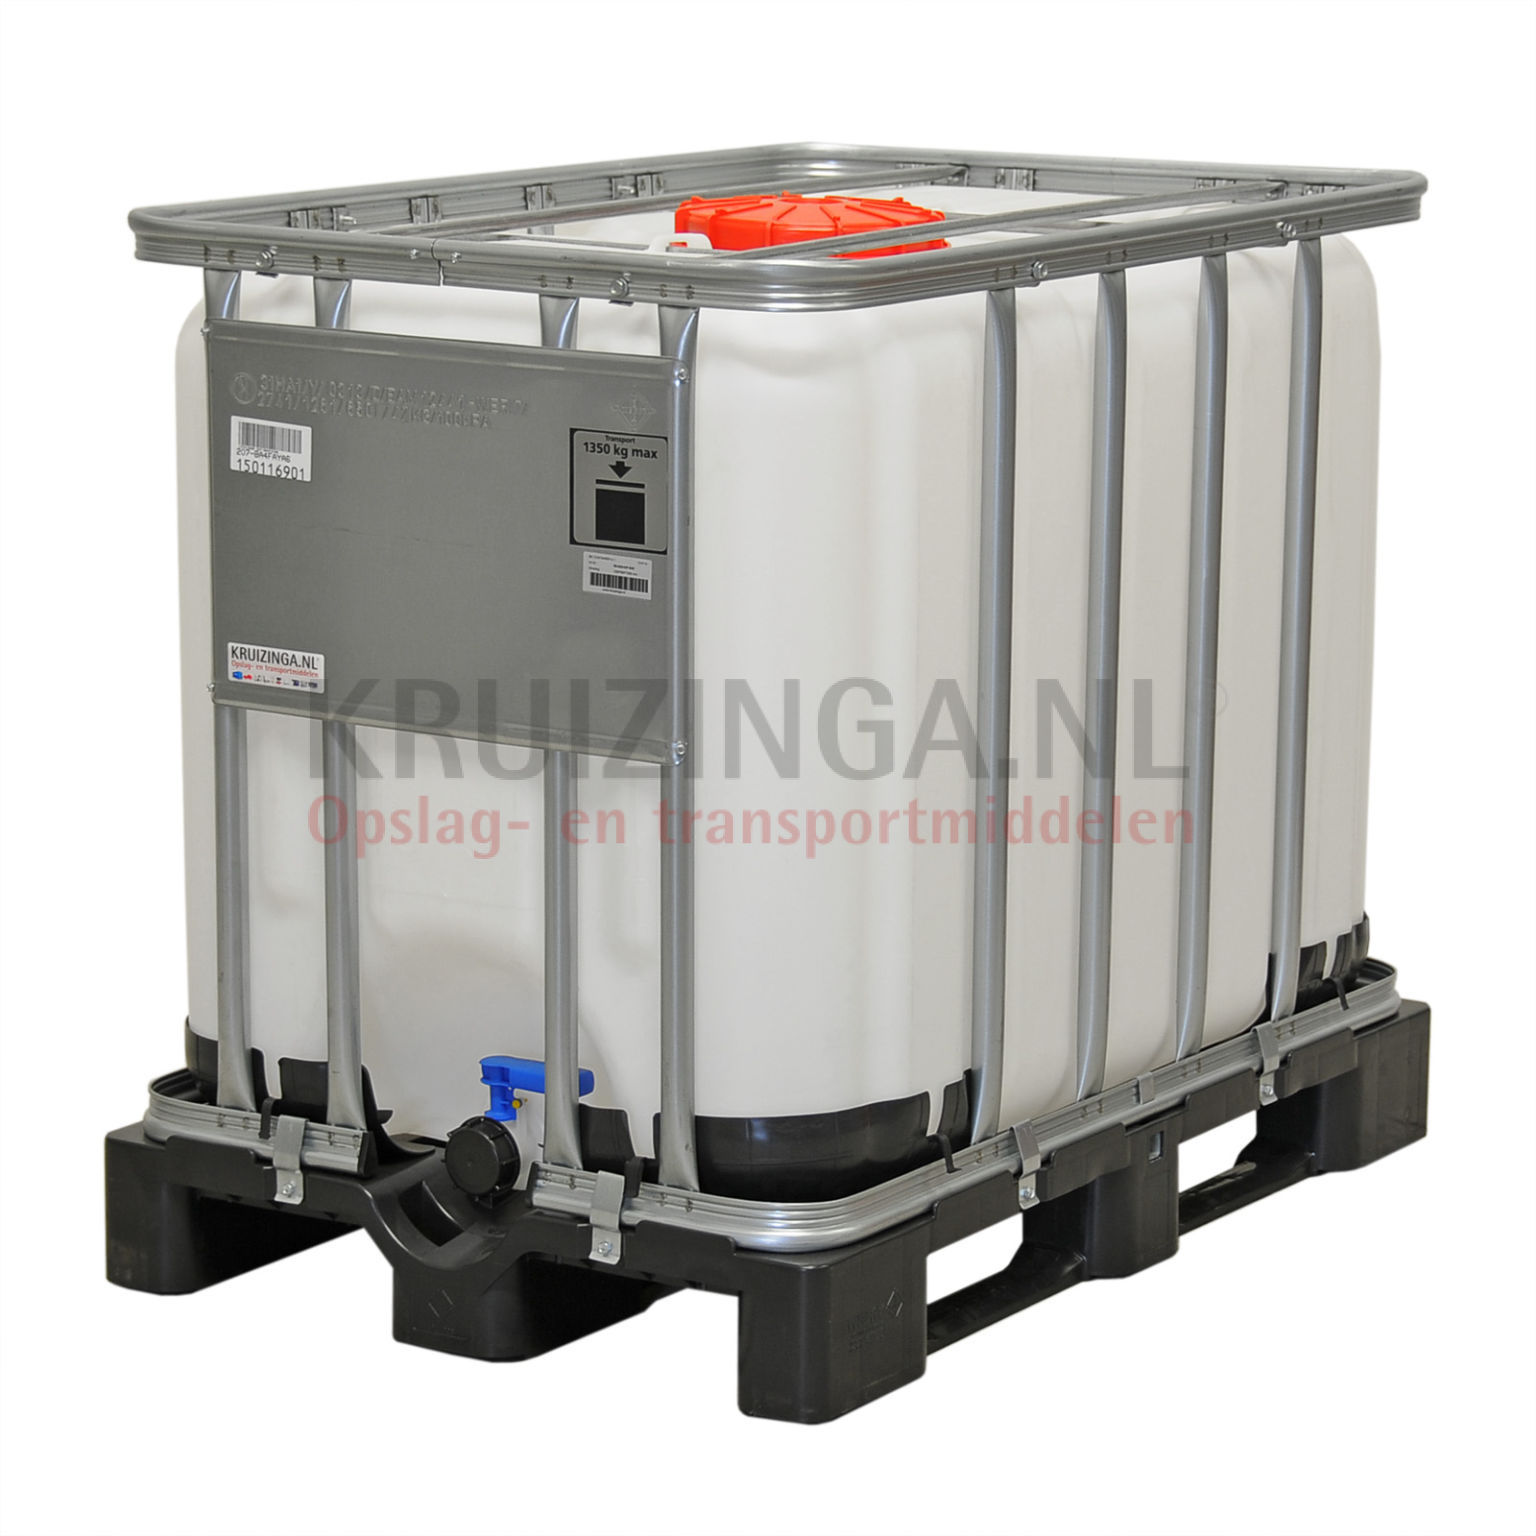 Ibc container fluid container 640 ltr un approved for Un container